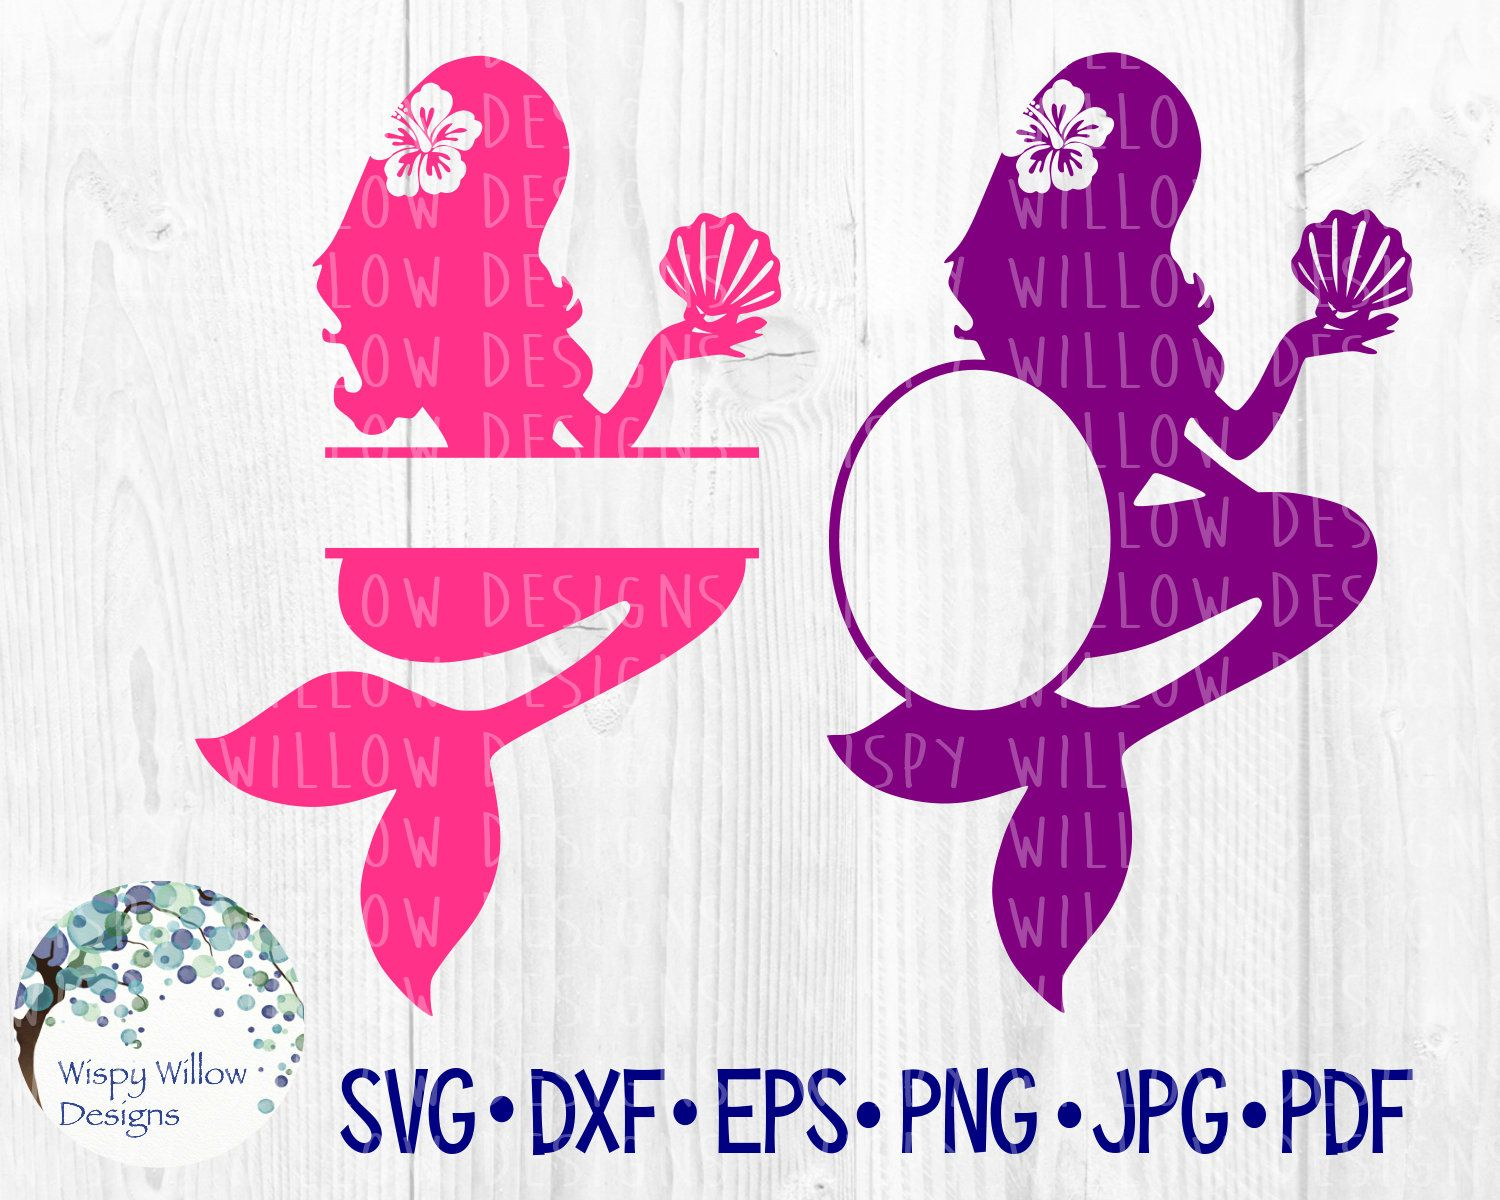 Pin on SVG DXF JPG PNG PDF Files